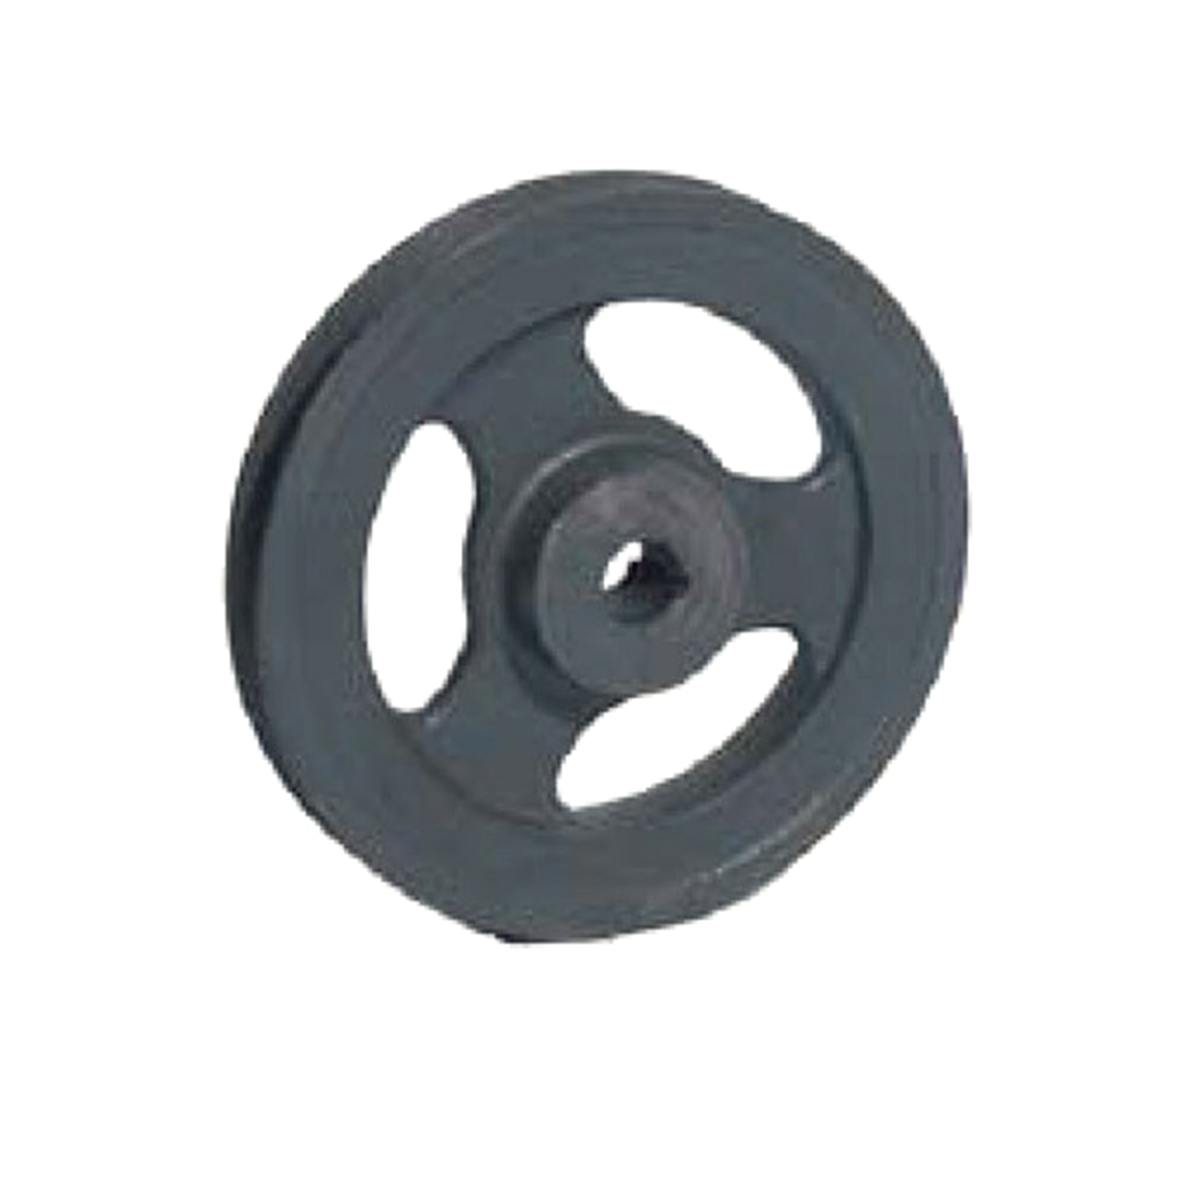 68232 Dixie Chopper Pulley BK 72